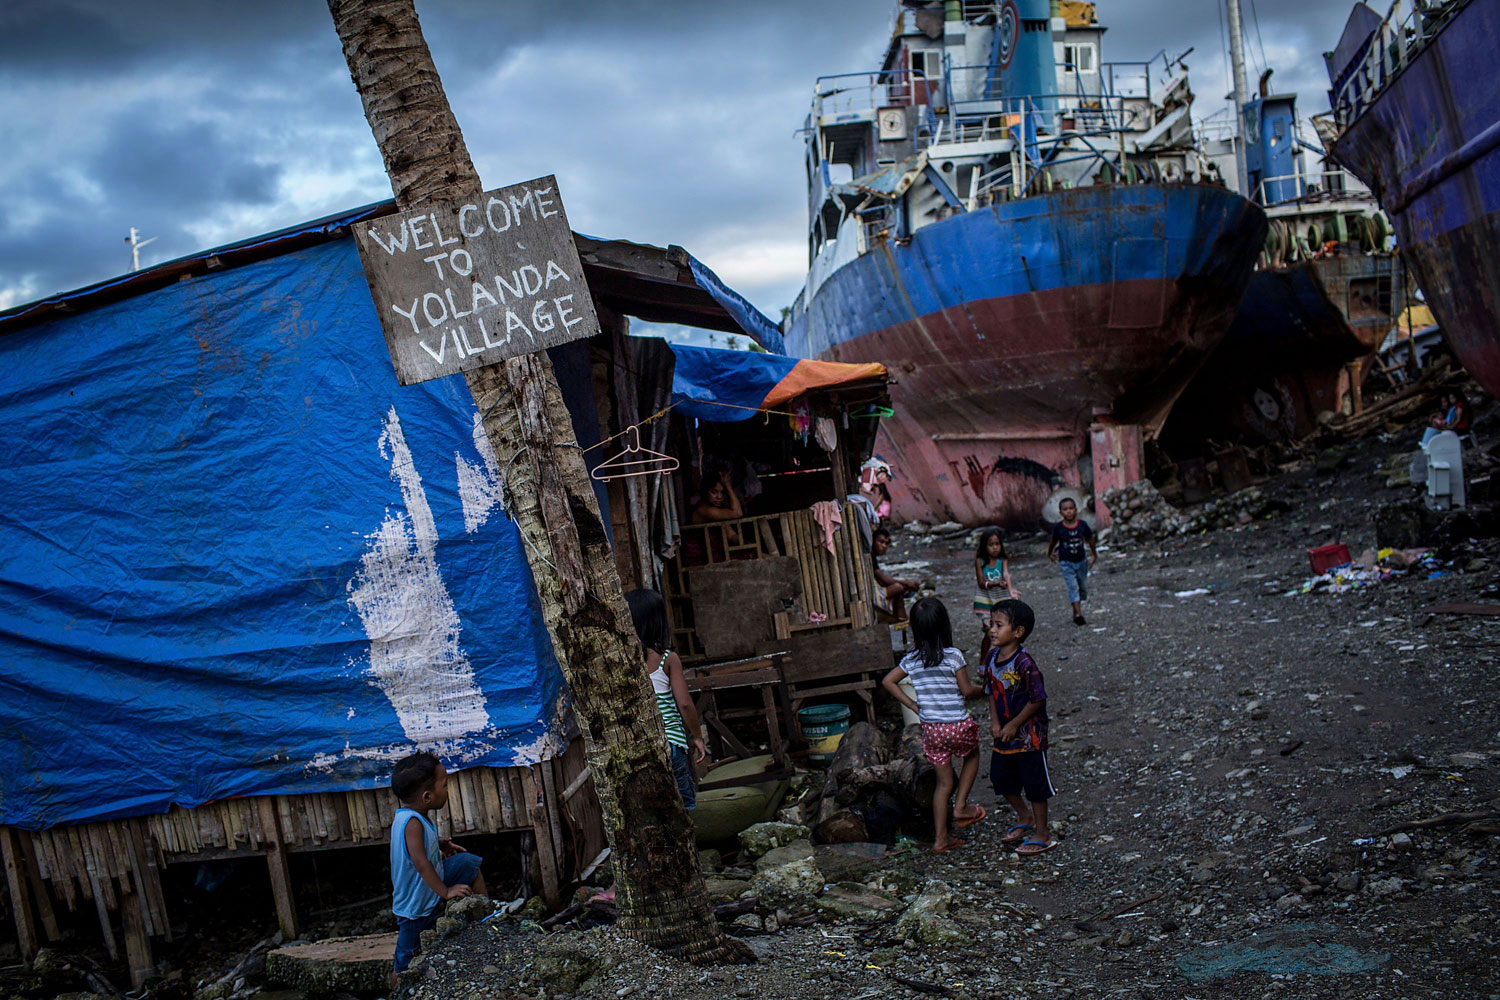 Children play around three large ships grounded by Typhoon Haiyan in the coastal area renamed by residents as 'Yolanda Village' on April 18, 2014 in Tacloban. Typhoon Haiyan is known as Yolanda in the Philippines.